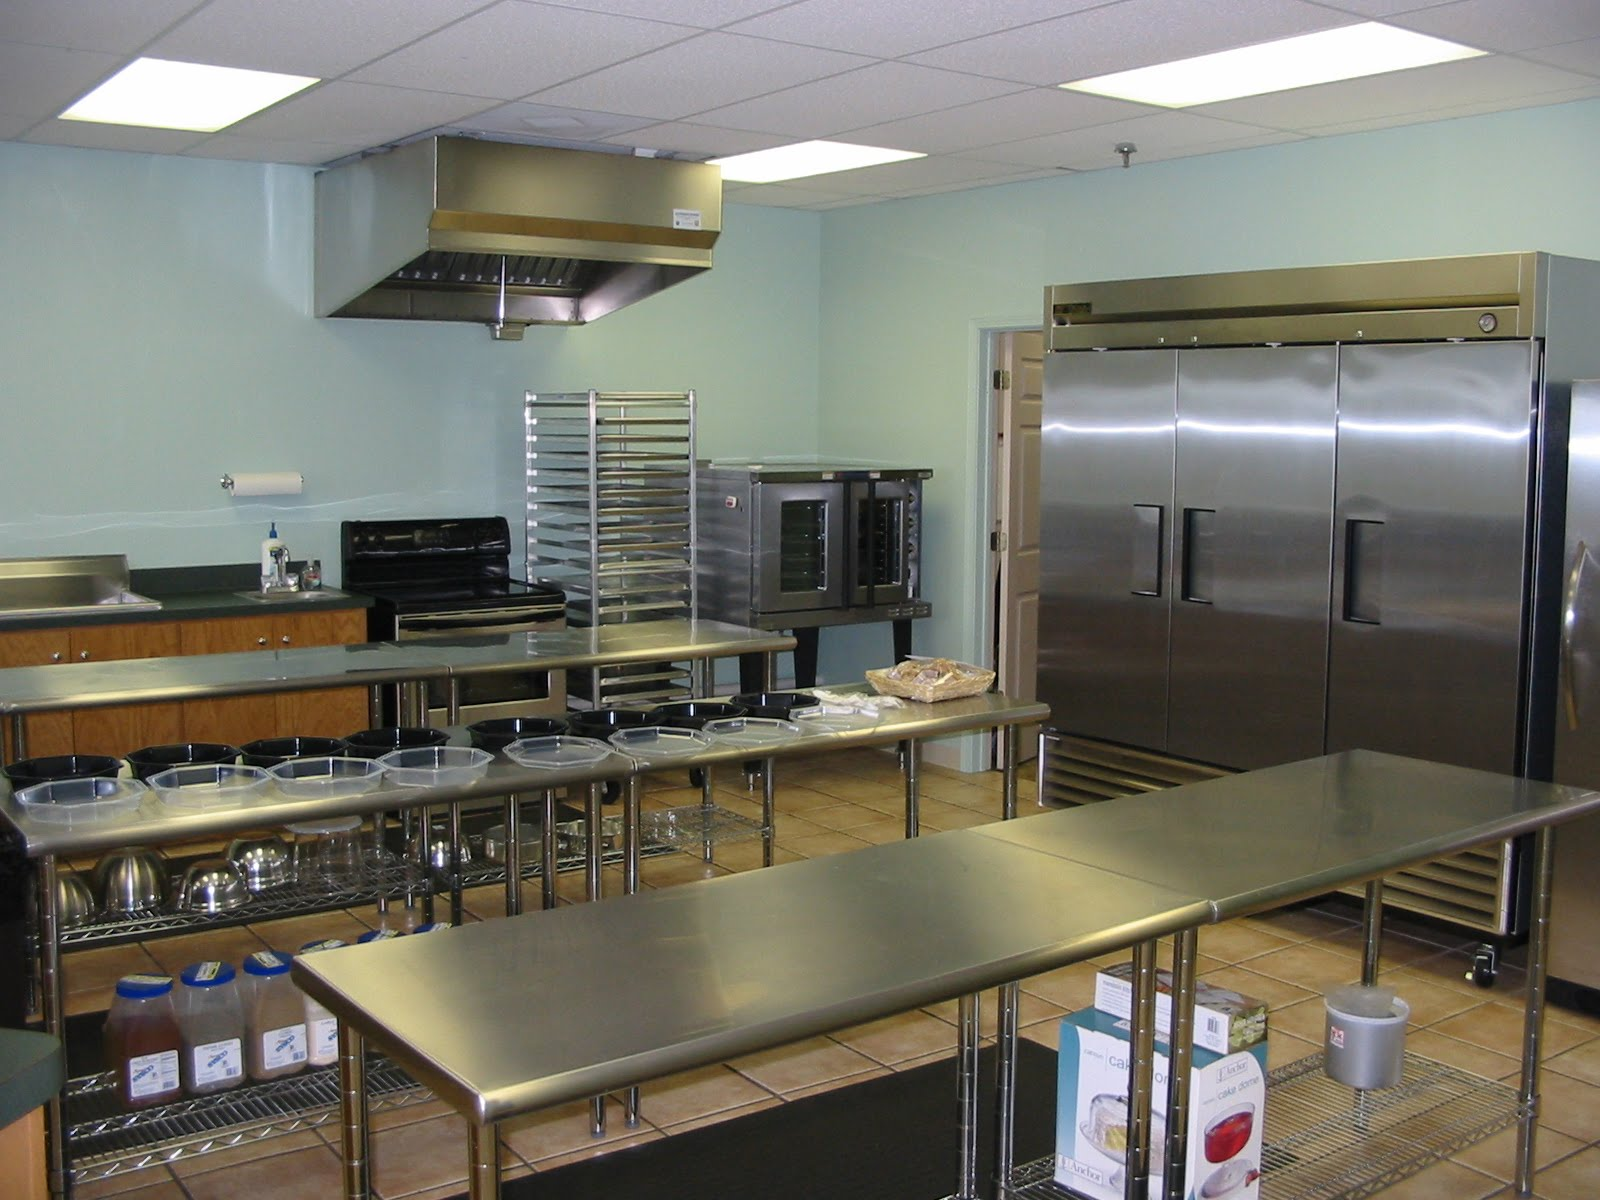 Small commercial kitchen layout architecture design Commercial kitchen layout plan